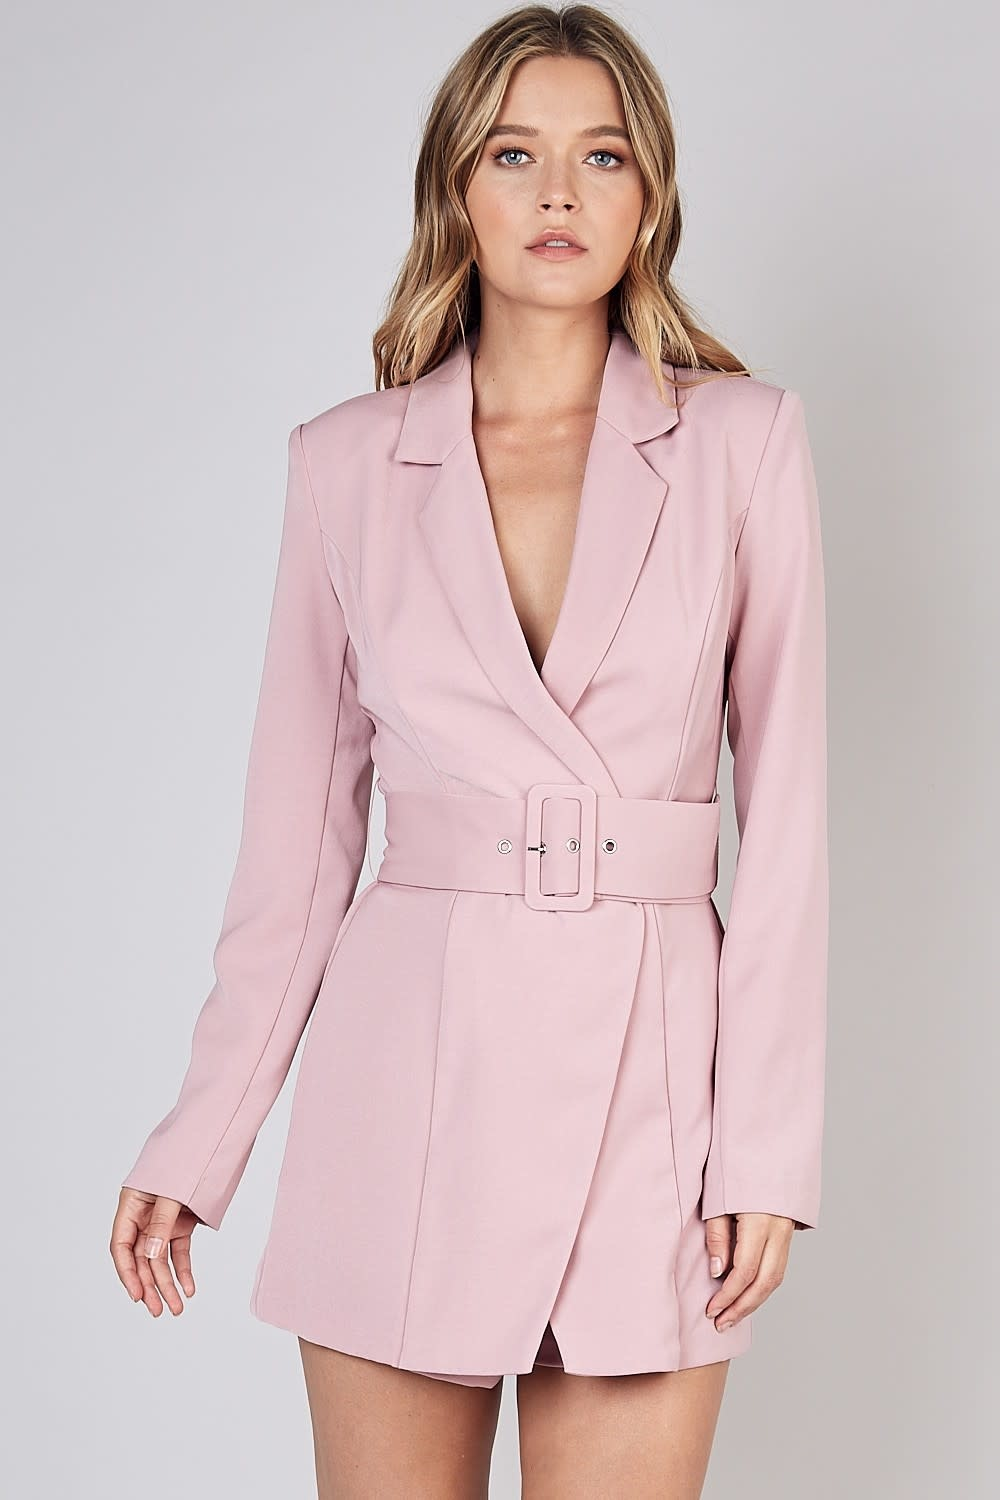 Do + Be The Power Playsuit